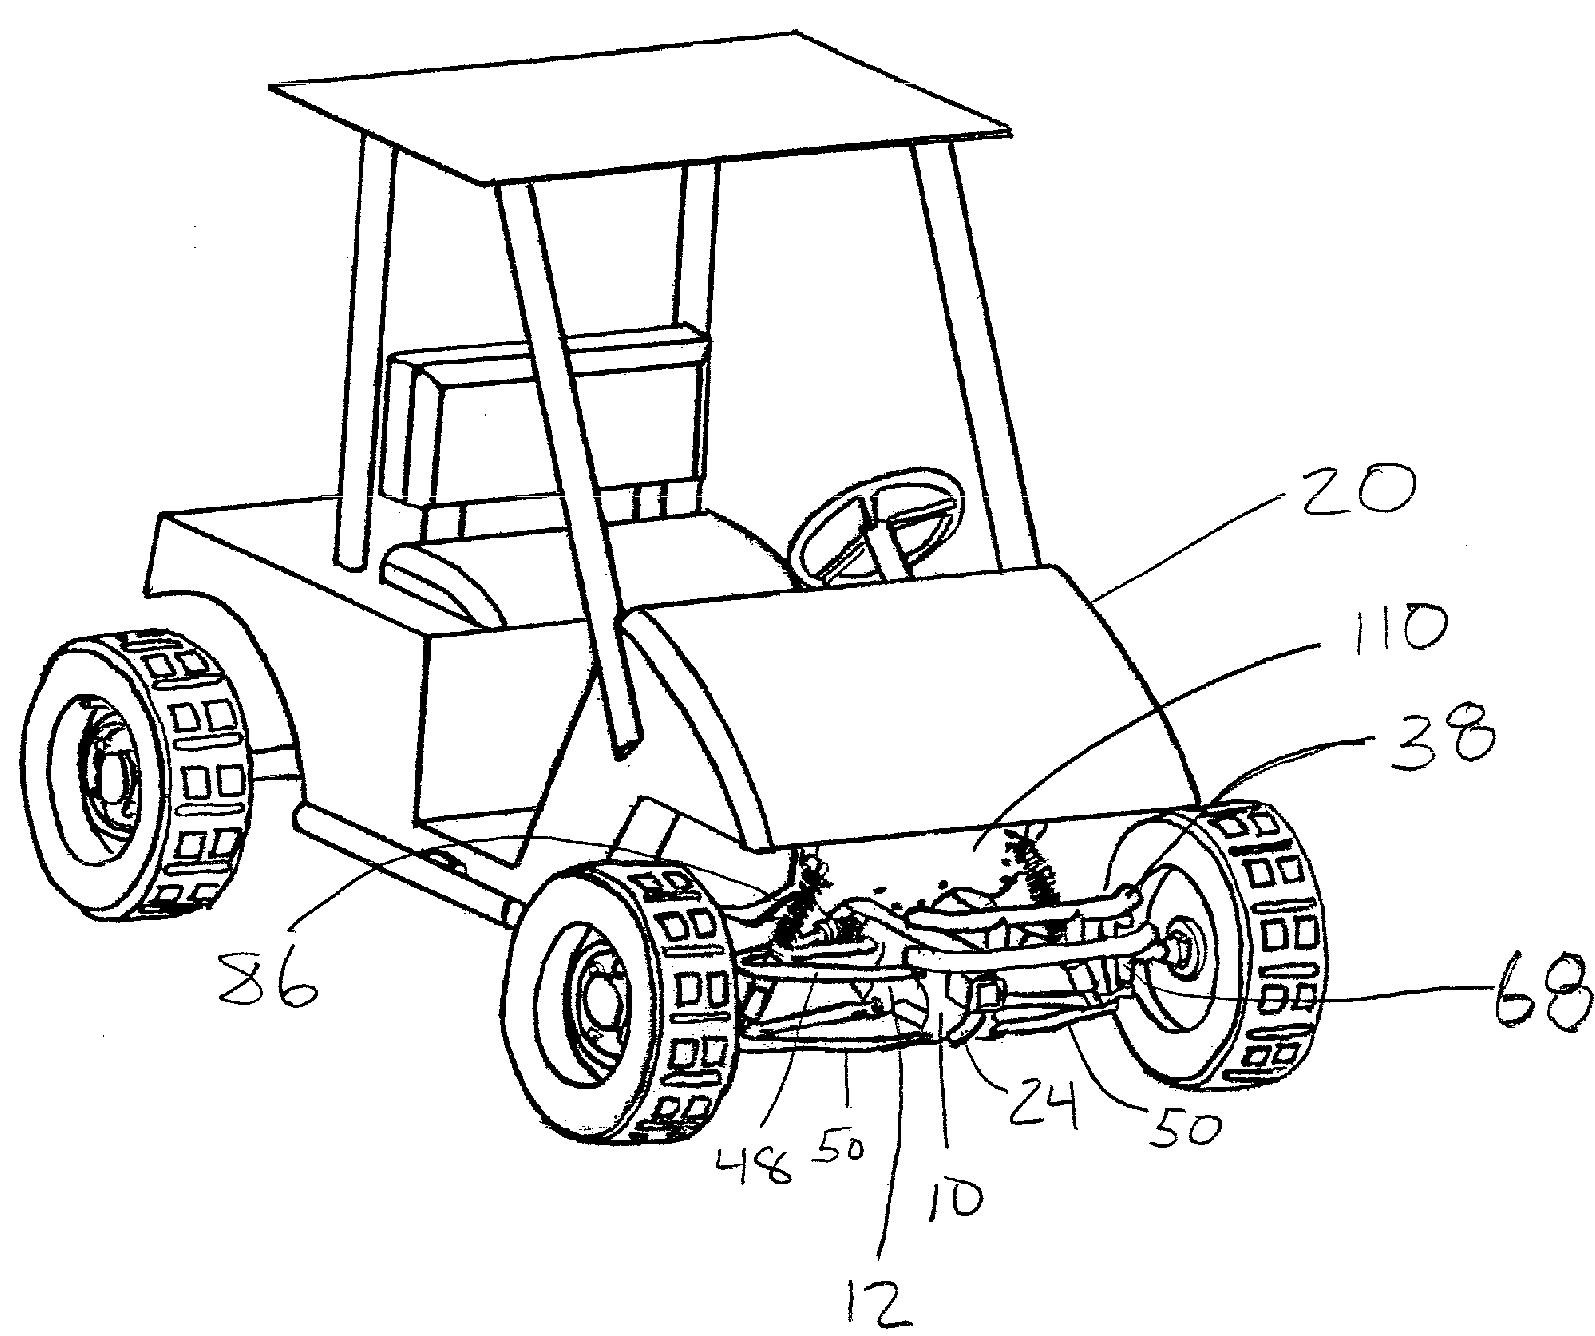 Rear Car Suspension Diagram Just What Every Golf Cart Needs A Lift Kit Golf Patents Of Rear Car Suspension Diagram